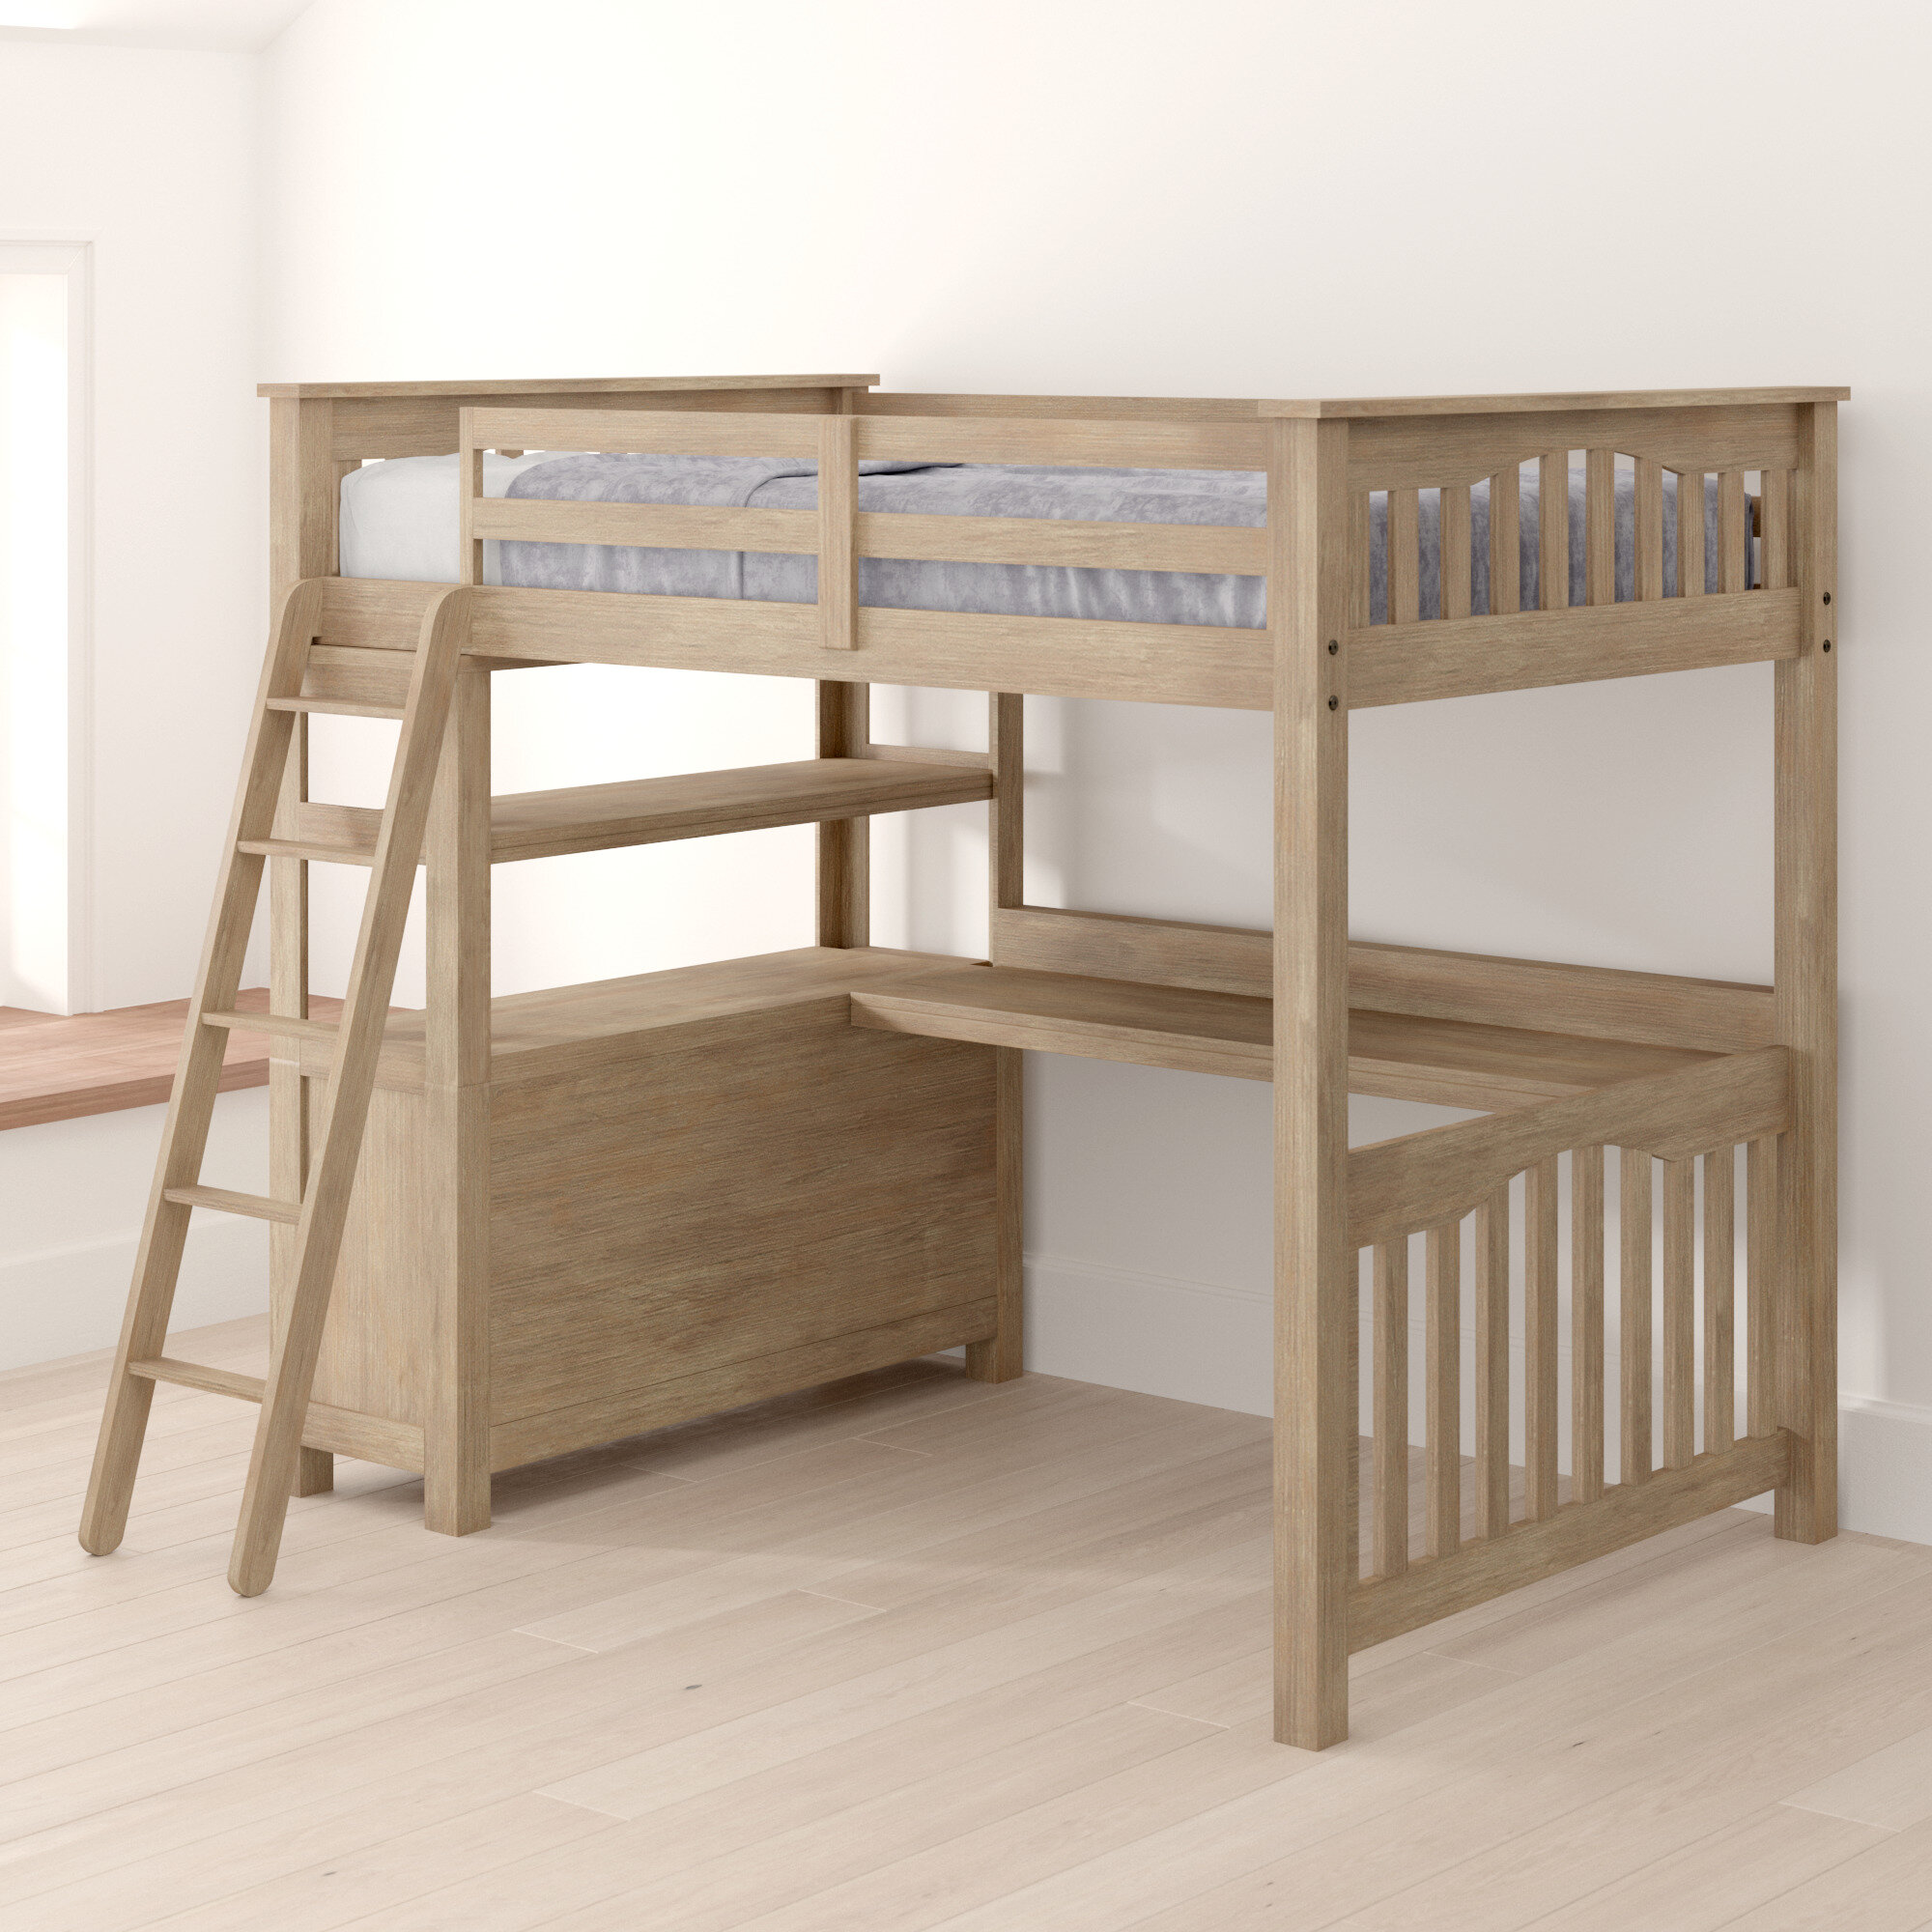 Terrific Bedlington Loft Bed With Drawers Bralicious Painted Fabric Chair Ideas Braliciousco